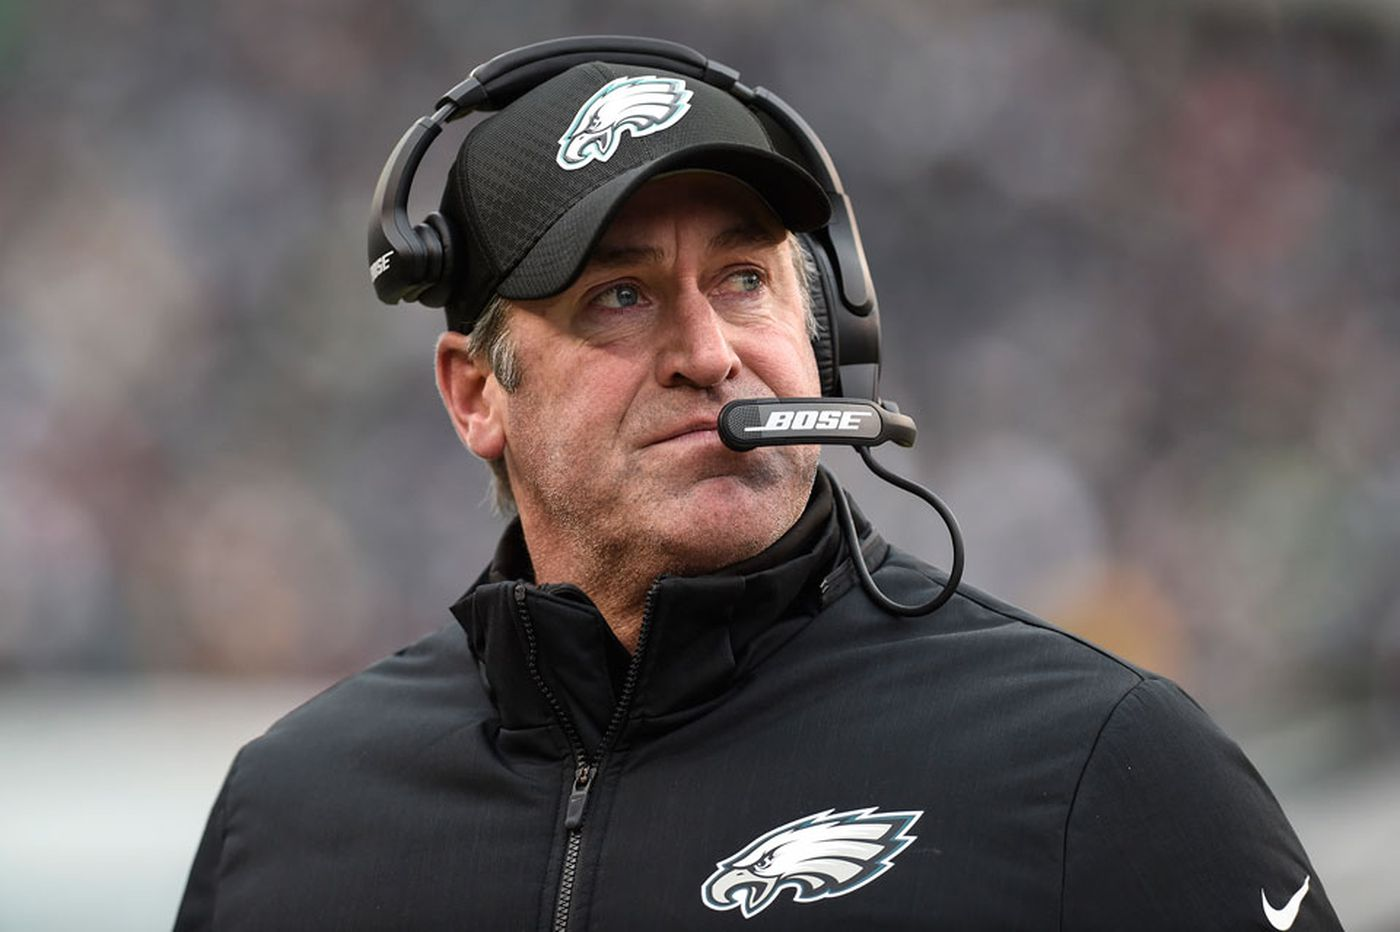 Eagles coach Doug Pederson's press conference, 10:45 | Live video